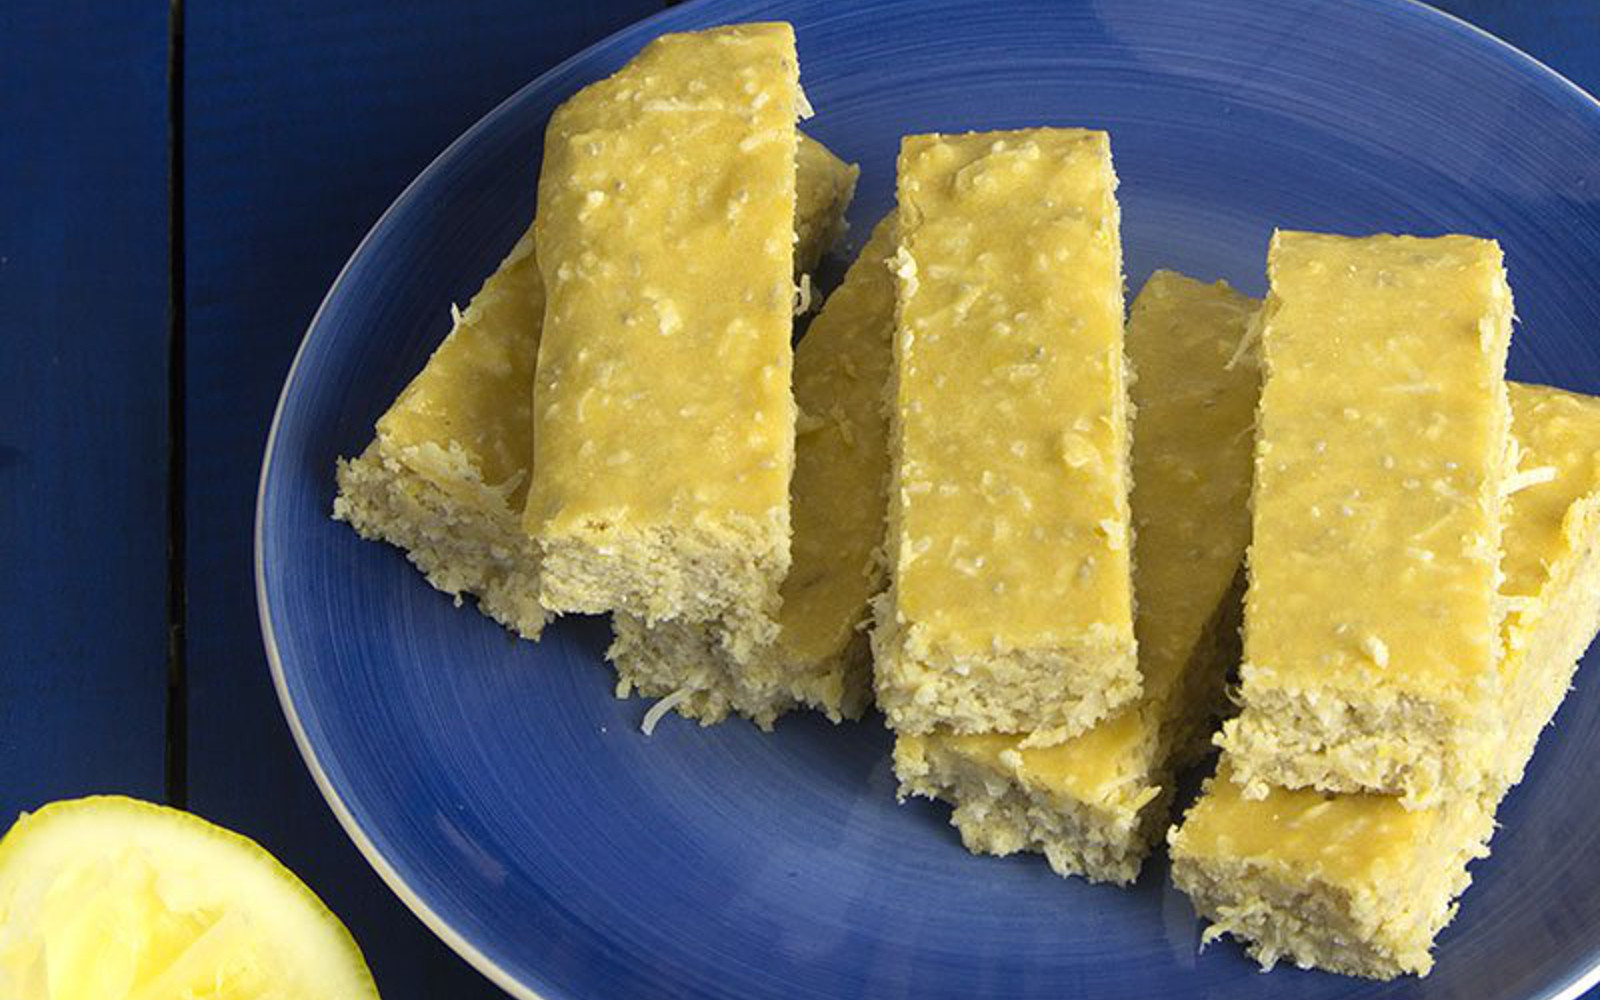 Lemon Coconut Protein Bars